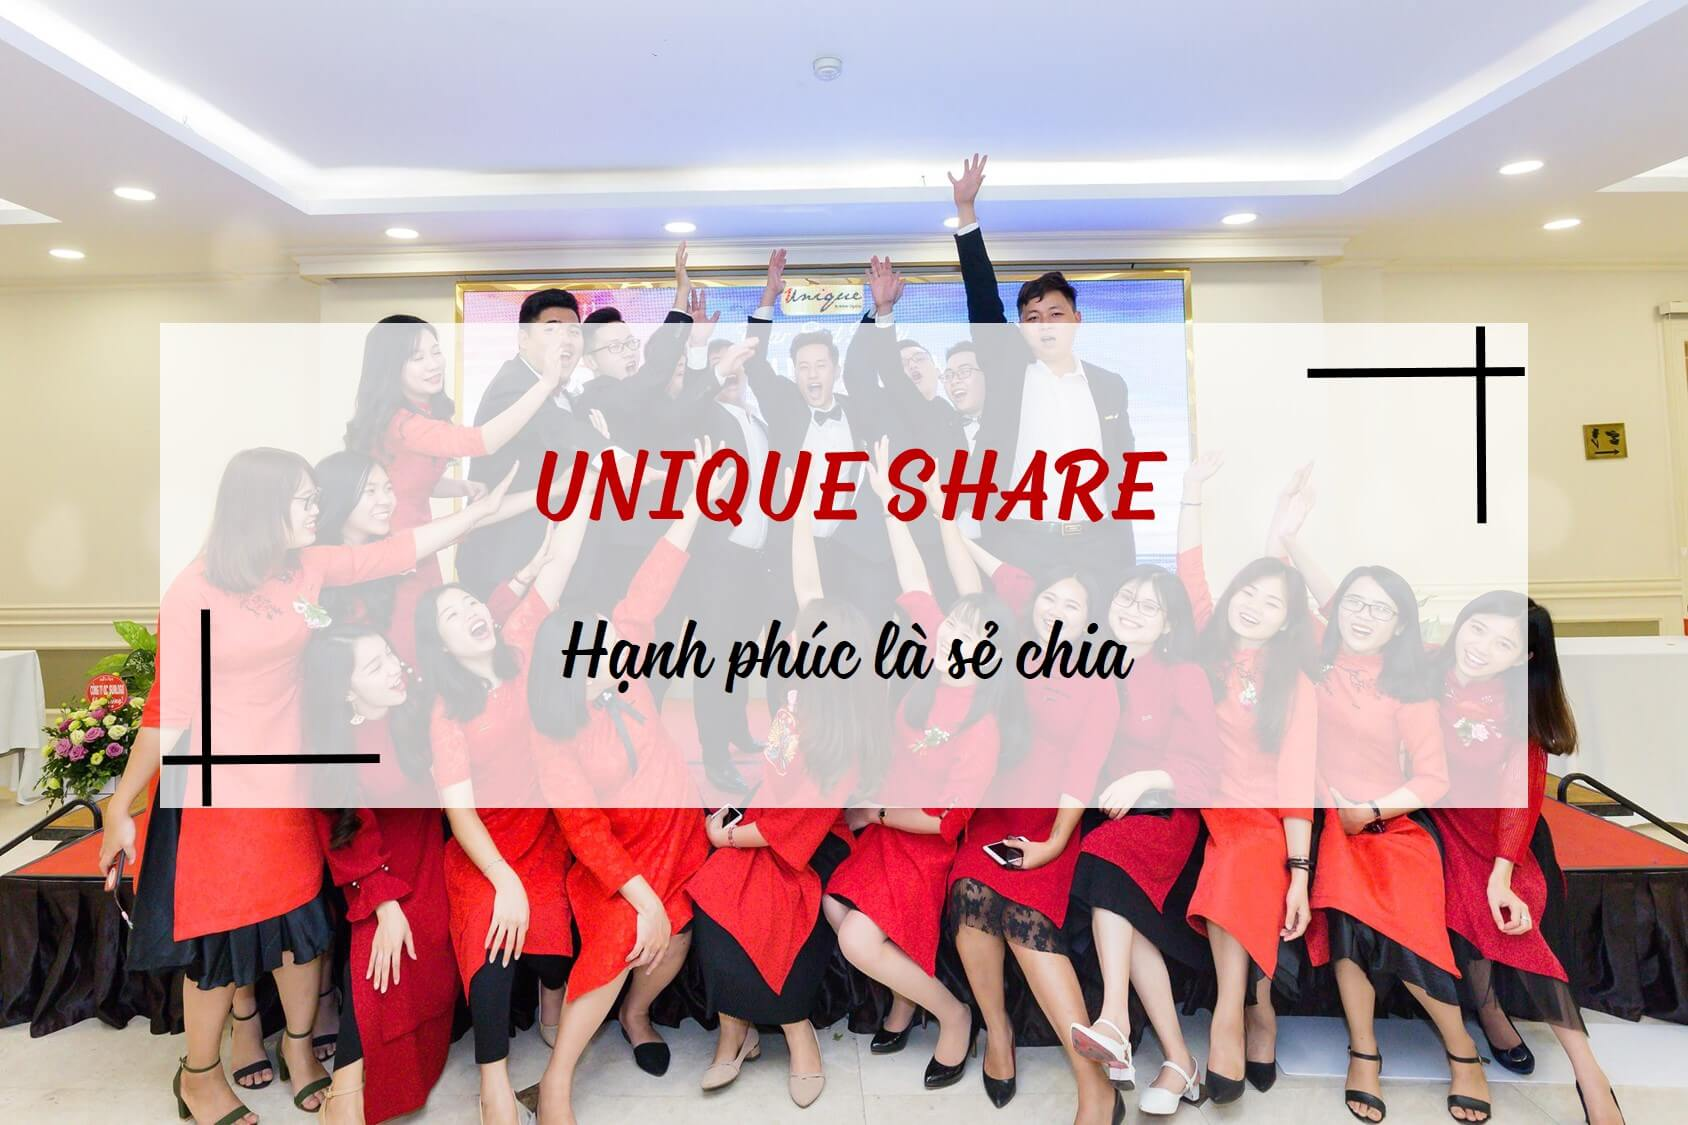 dự án unique share